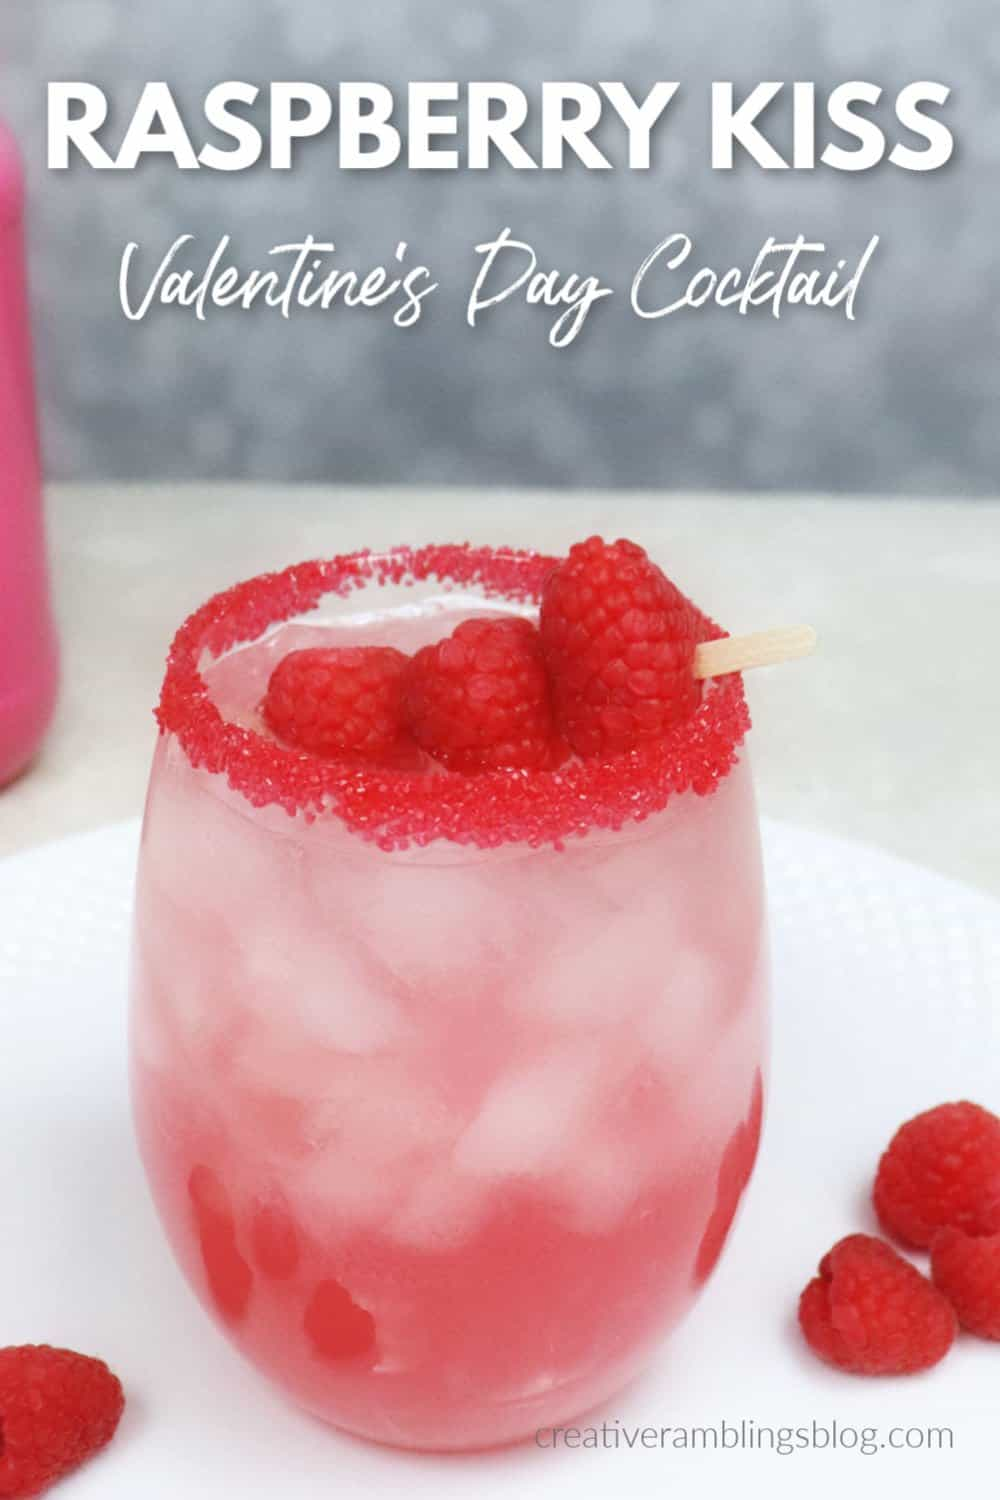 Raspberry kiss cocktail for Valentine's Day (1)